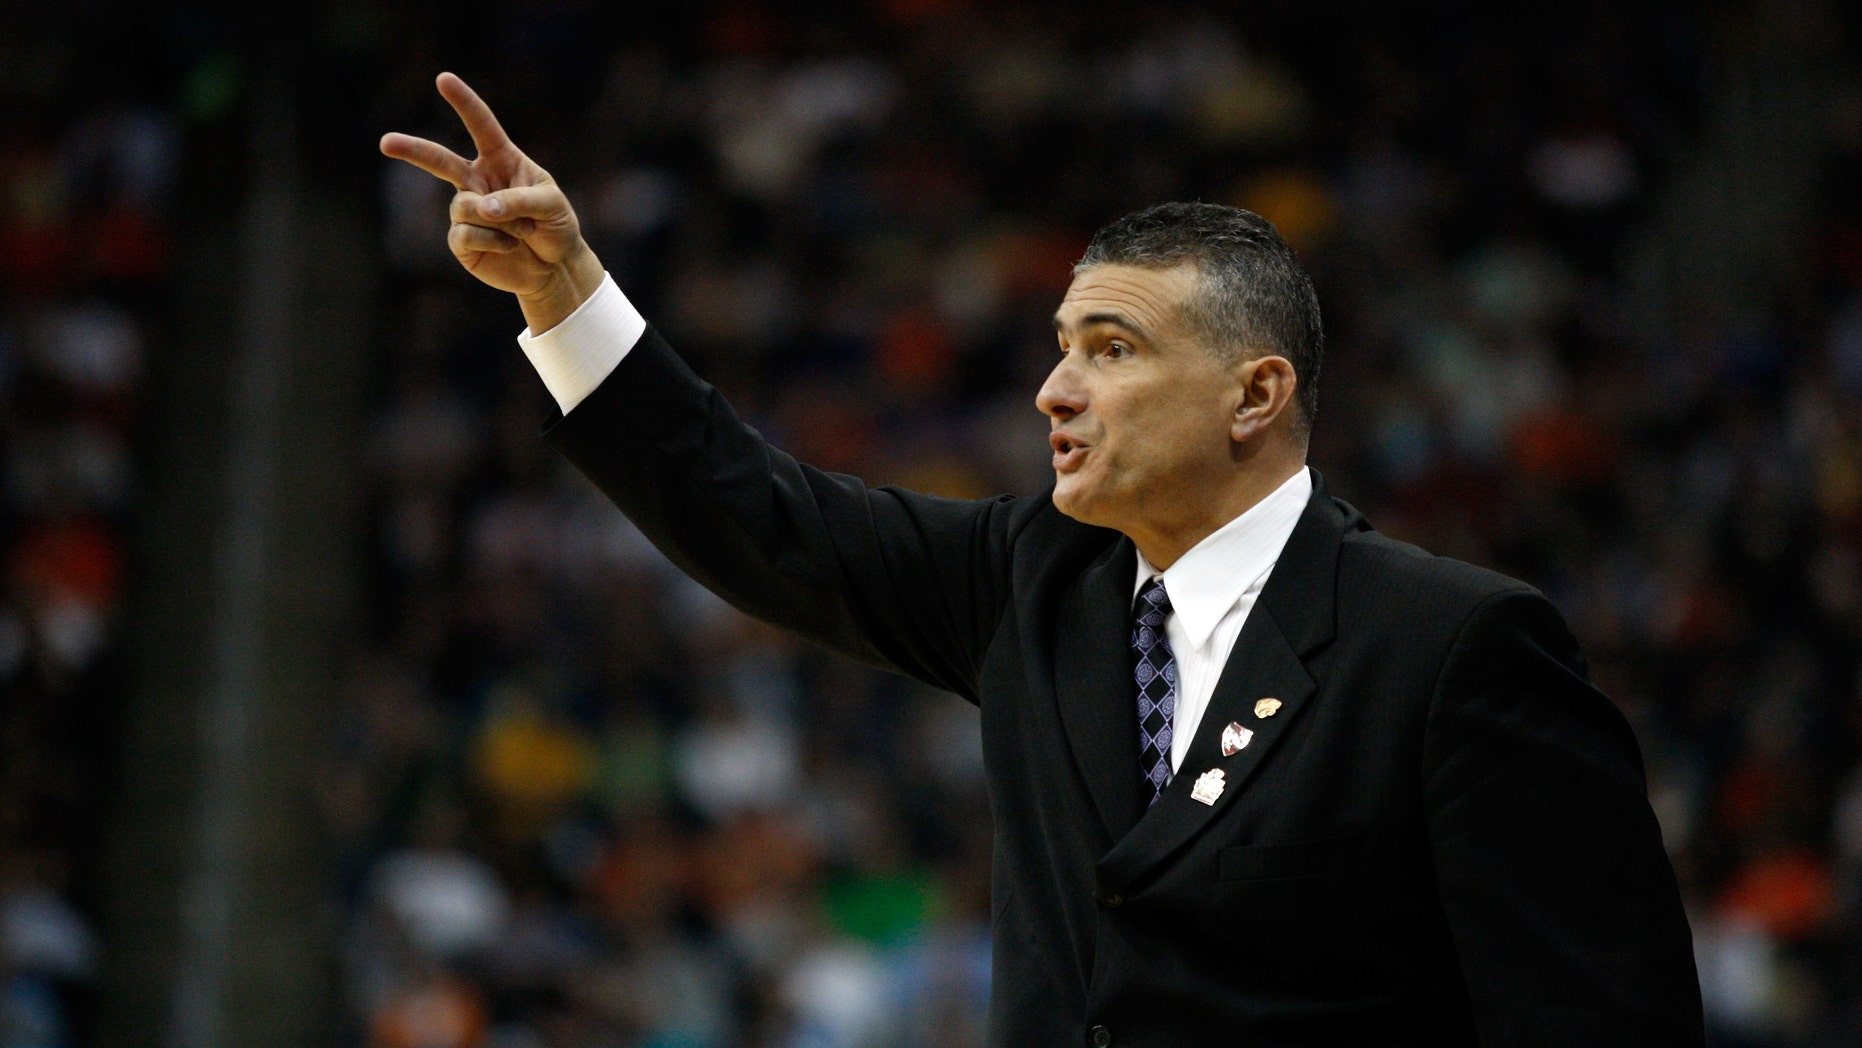 PITTSBURGH, PA - MARCH 15:  Head coach Frank Martin of the Kansas State Wildcats reacts against the Southern Miss Golden Eagles during the second round of the 2012 NCAA Men's Basketball Tournament at Consol Energy Center on March 15, 2012 in Pittsburgh, Pennsylvania.  (Photo by Jared Wickerham/Getty Images)